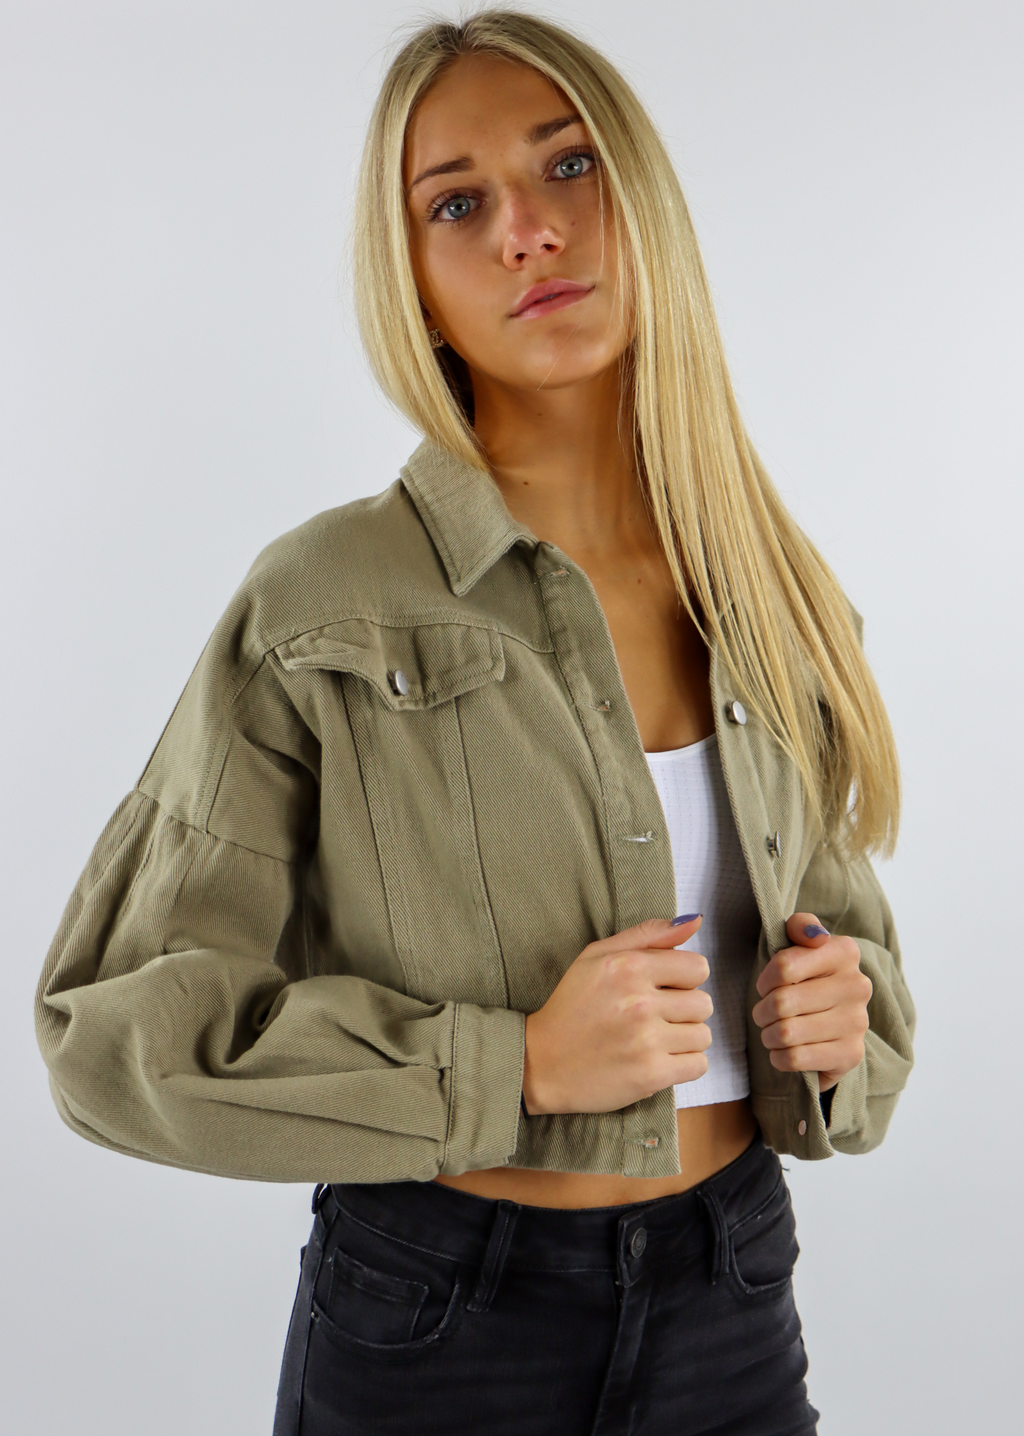 My Type Jacket ★ Olive Green